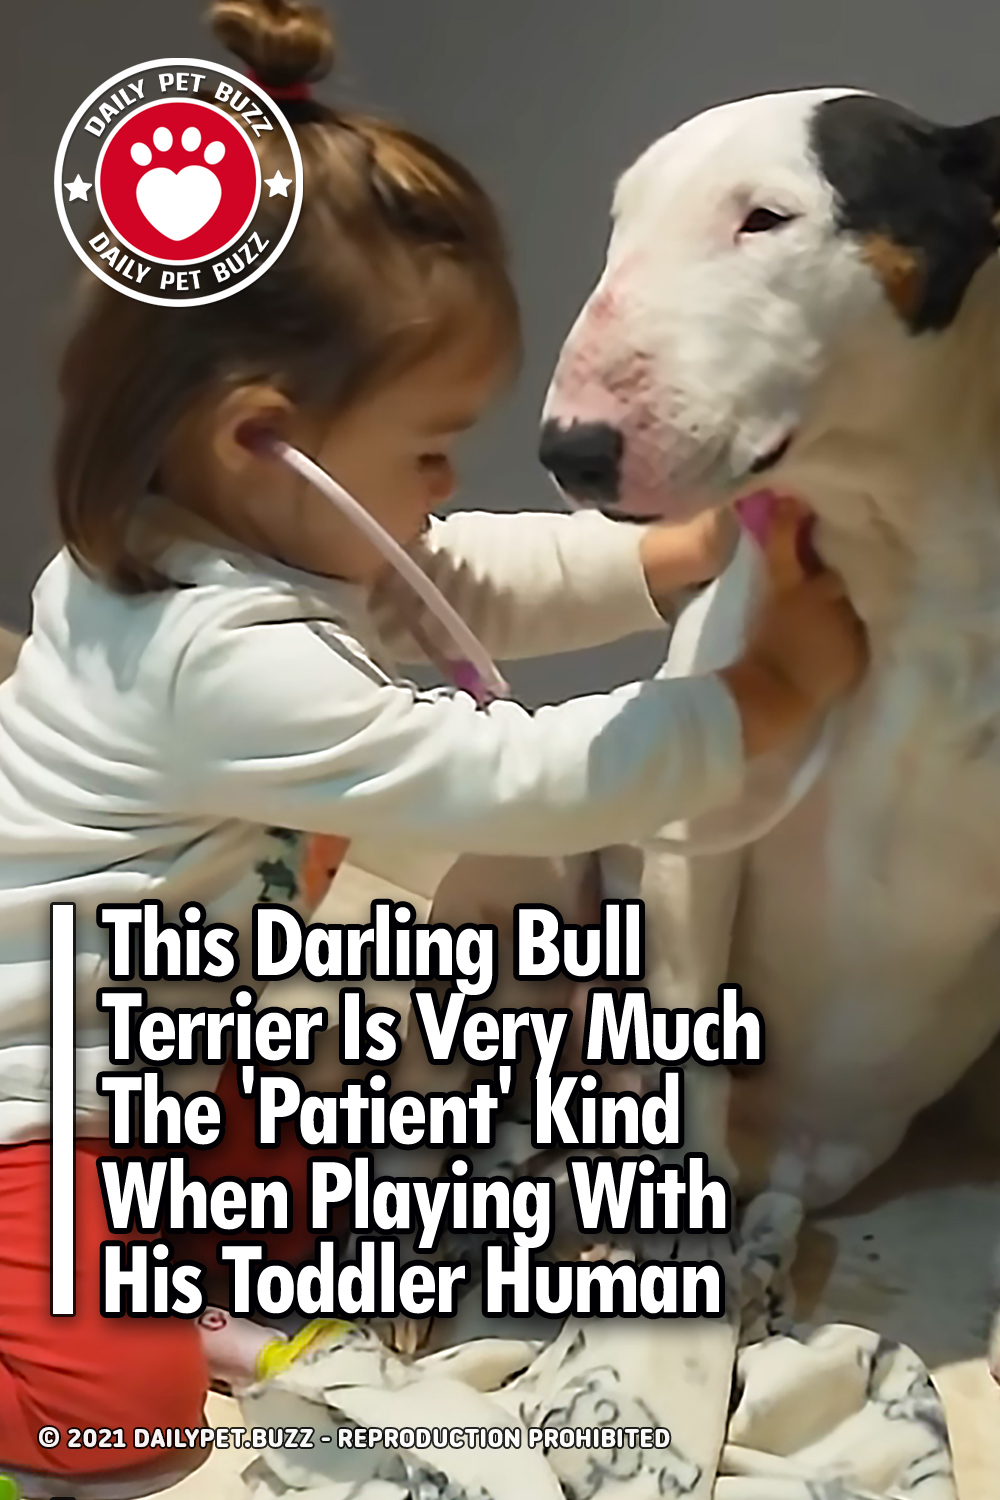 This Darling Bull Terrier Is Very Much The \'Patient\' Kind When Playing With His Toddler Human